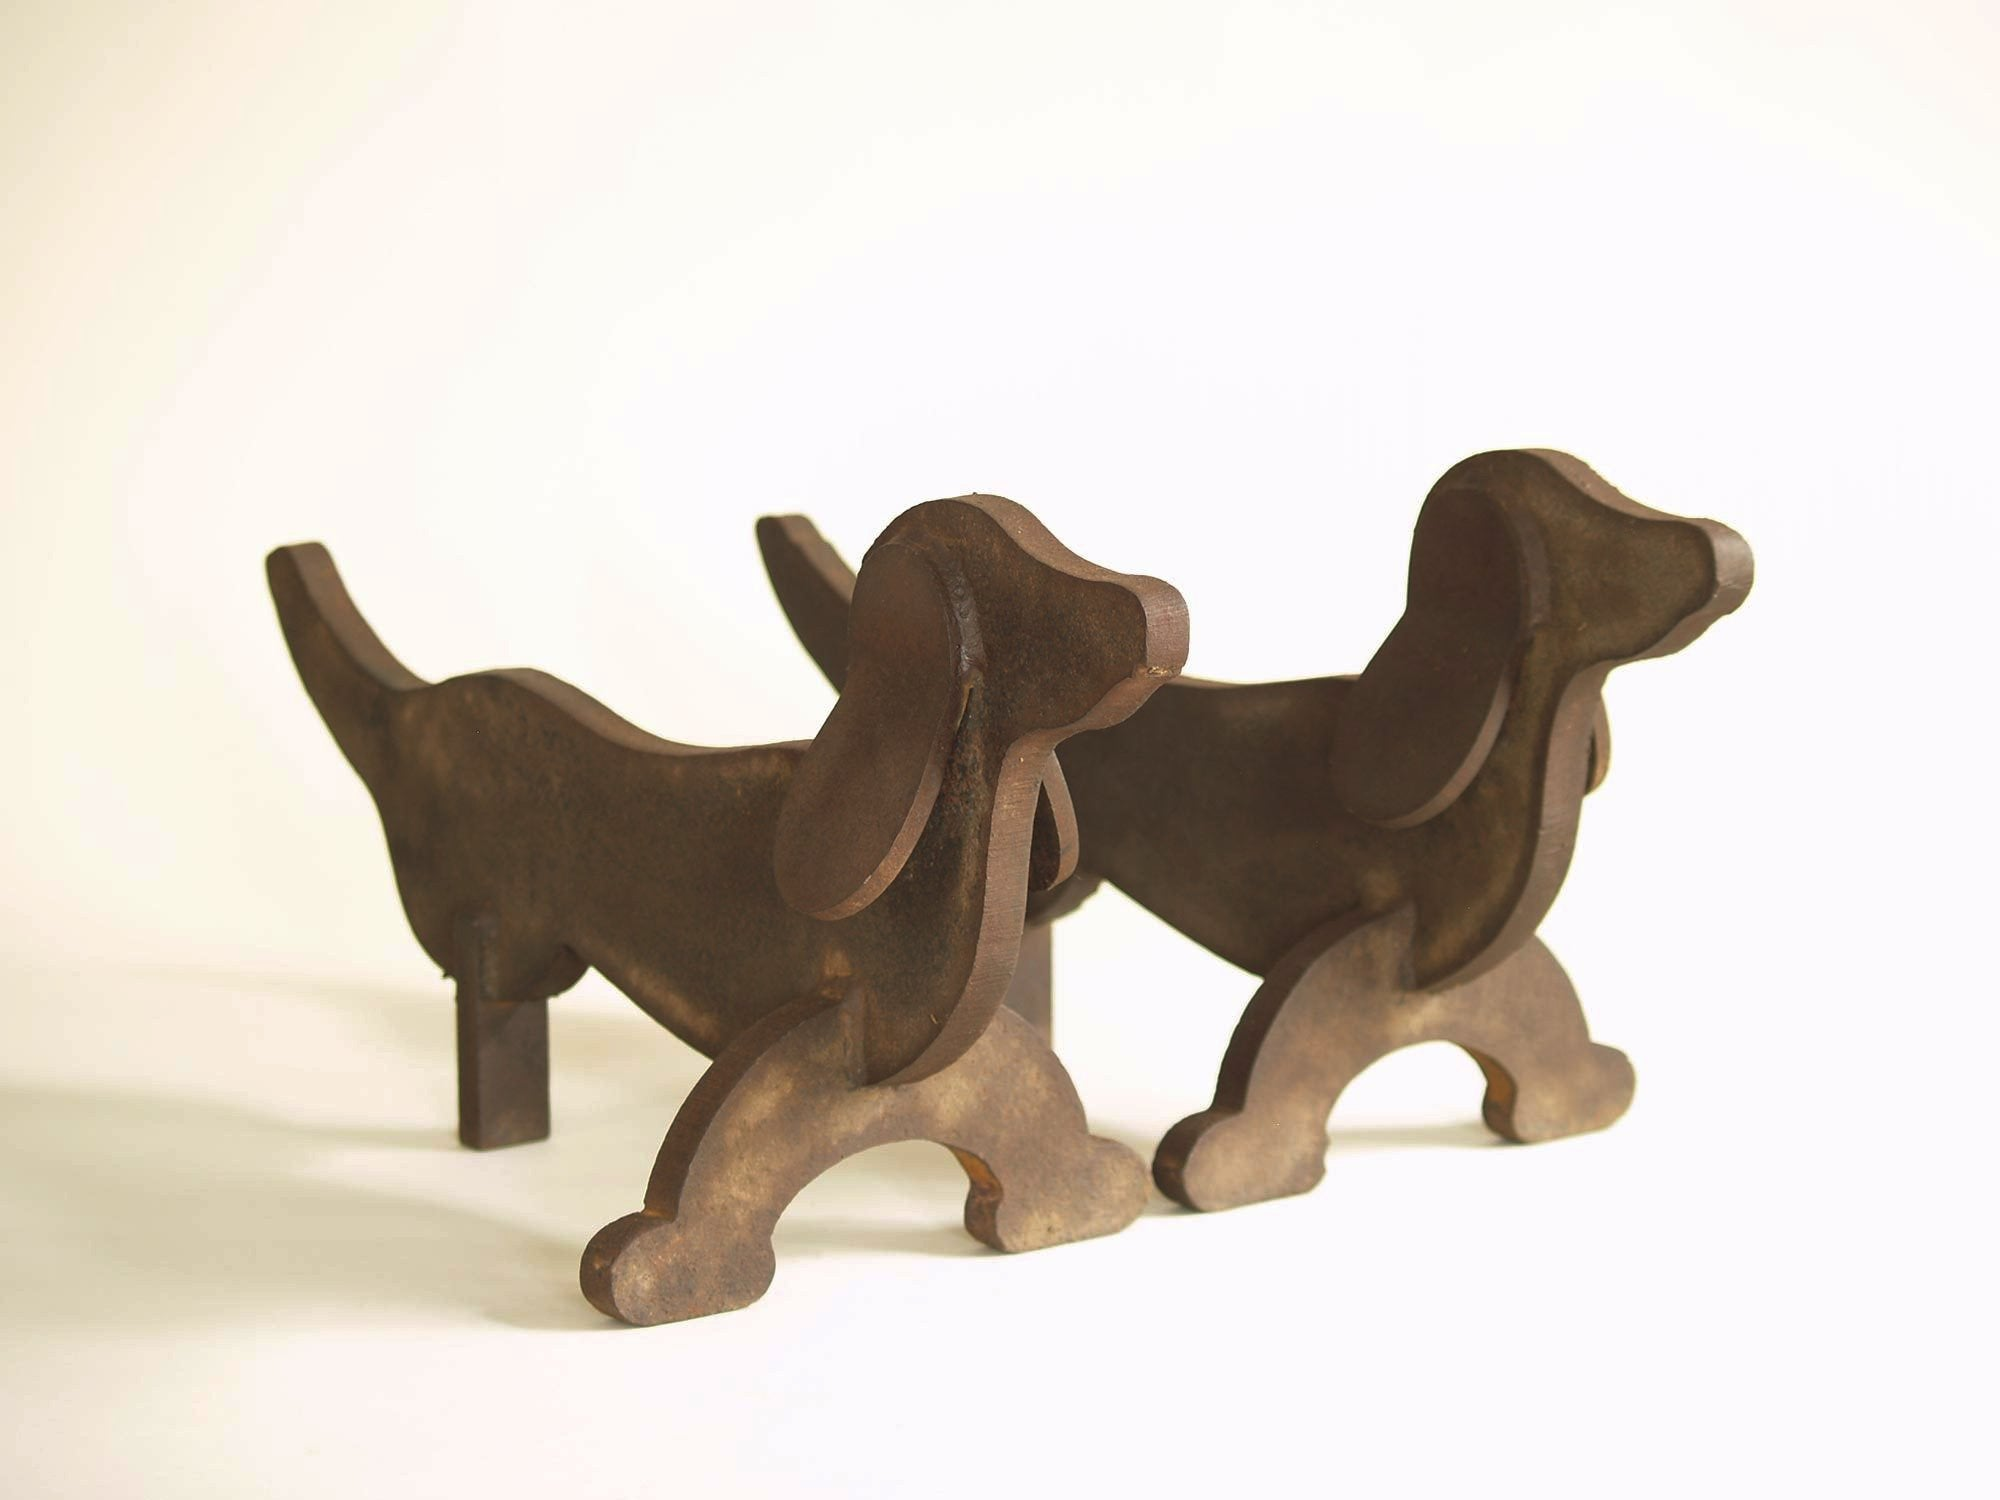 Paire de chenets Art Déco attribués à Édouard Schenck, France (vers 1930)..Pair of Art Déco fire-dogs andirons attributed to Édouard Schenck, France (circa 1930)